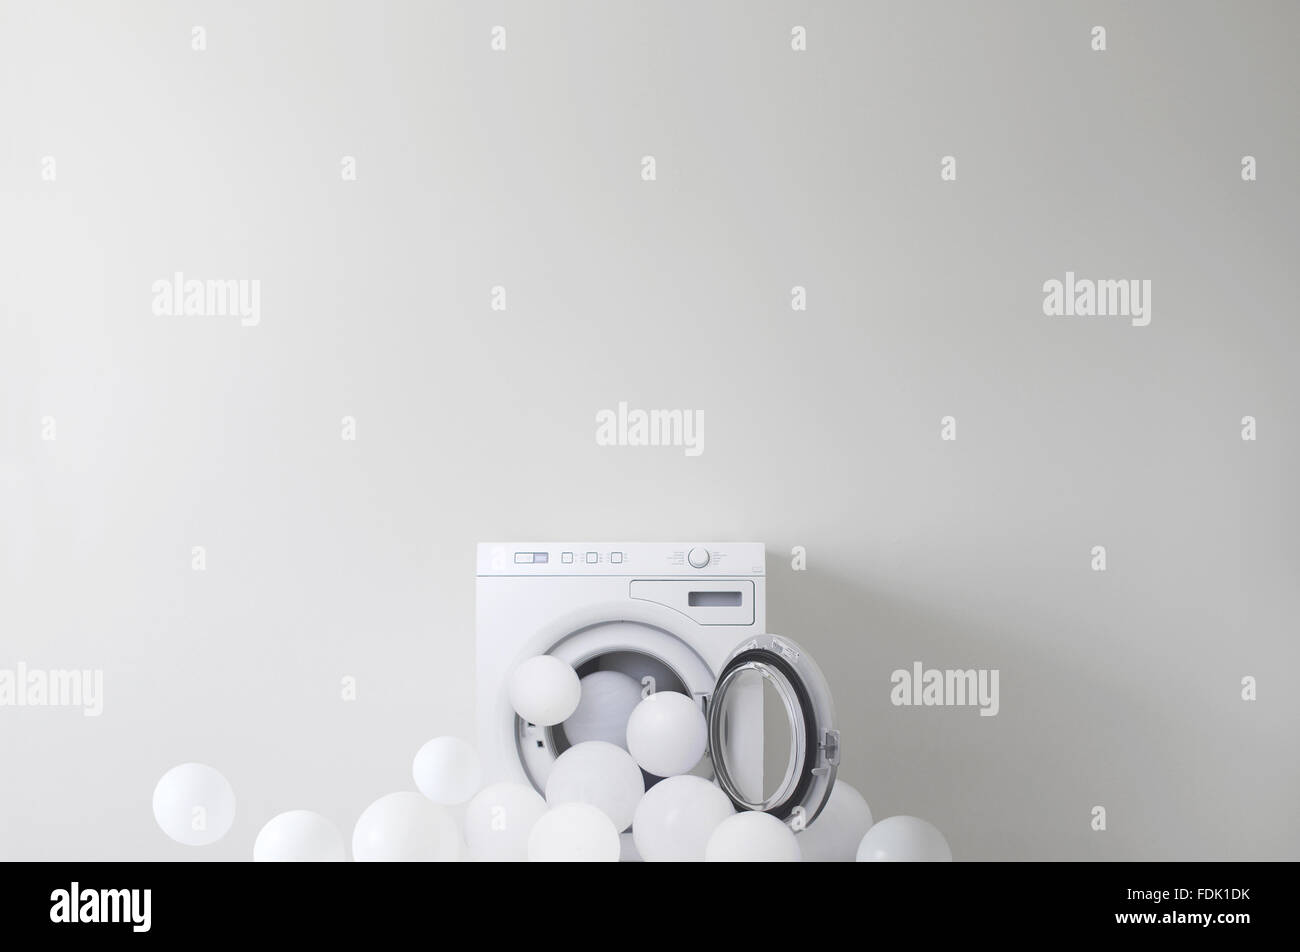 Conceptual washing machine leaking soap suds - Stock Image